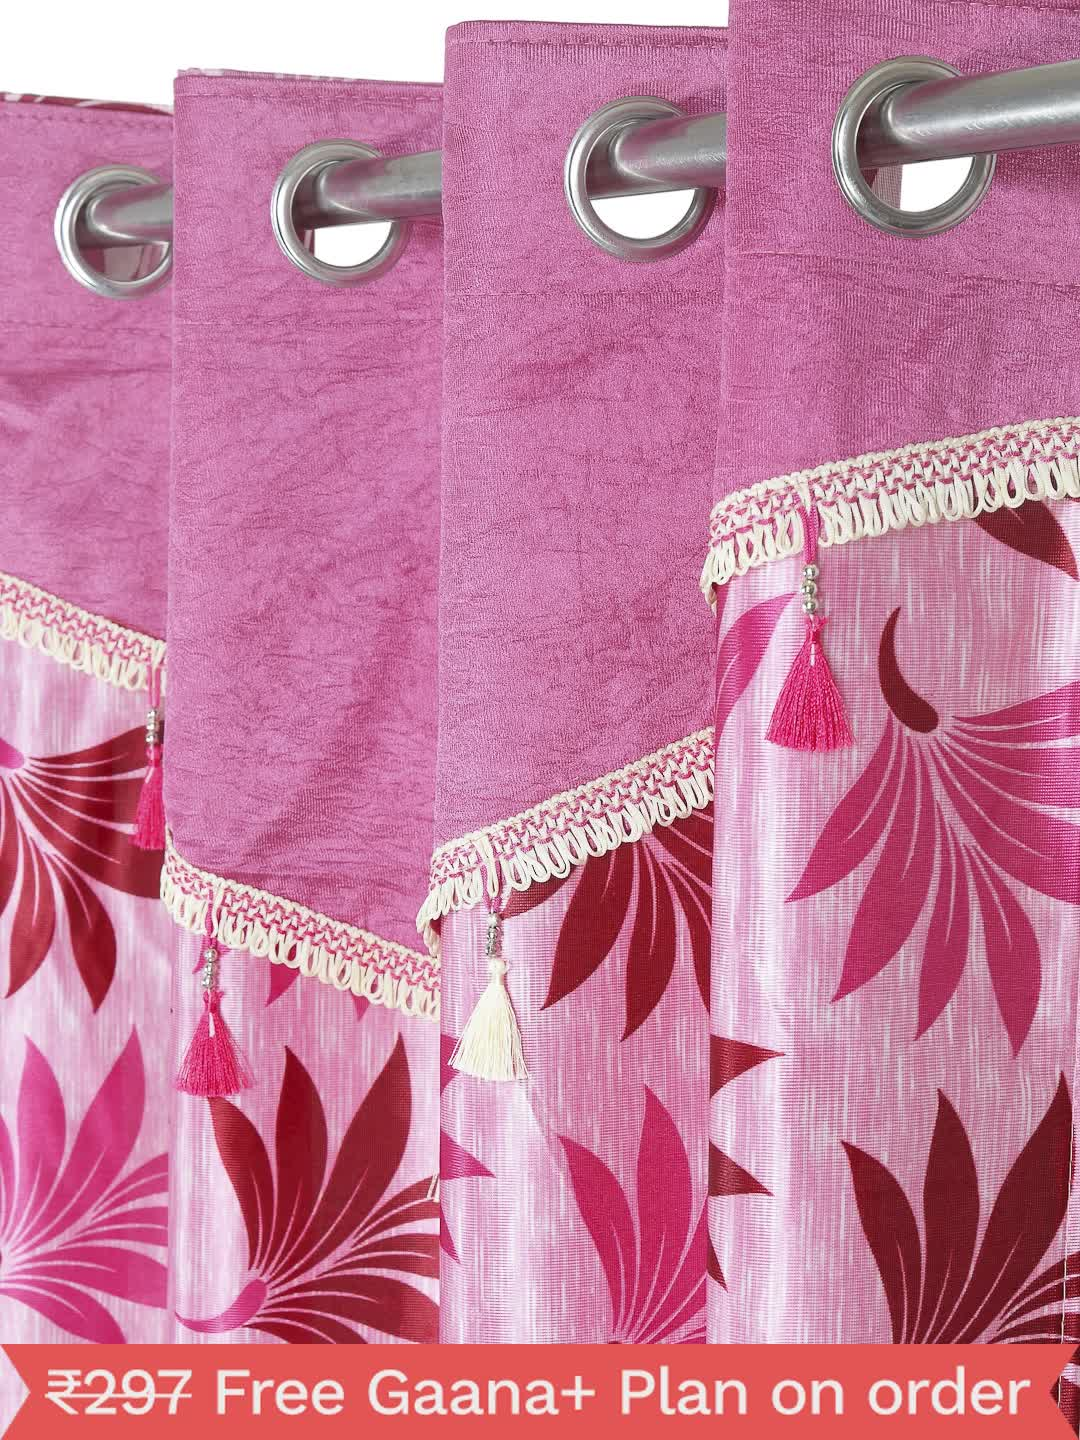 Cortina - Pack of 2 Decorative, Fancy, Eyelet Window Curtain set (150 x 115 cm), All over Leafy pattern, Pink, Fringe and tassle detail  - 1, Medium